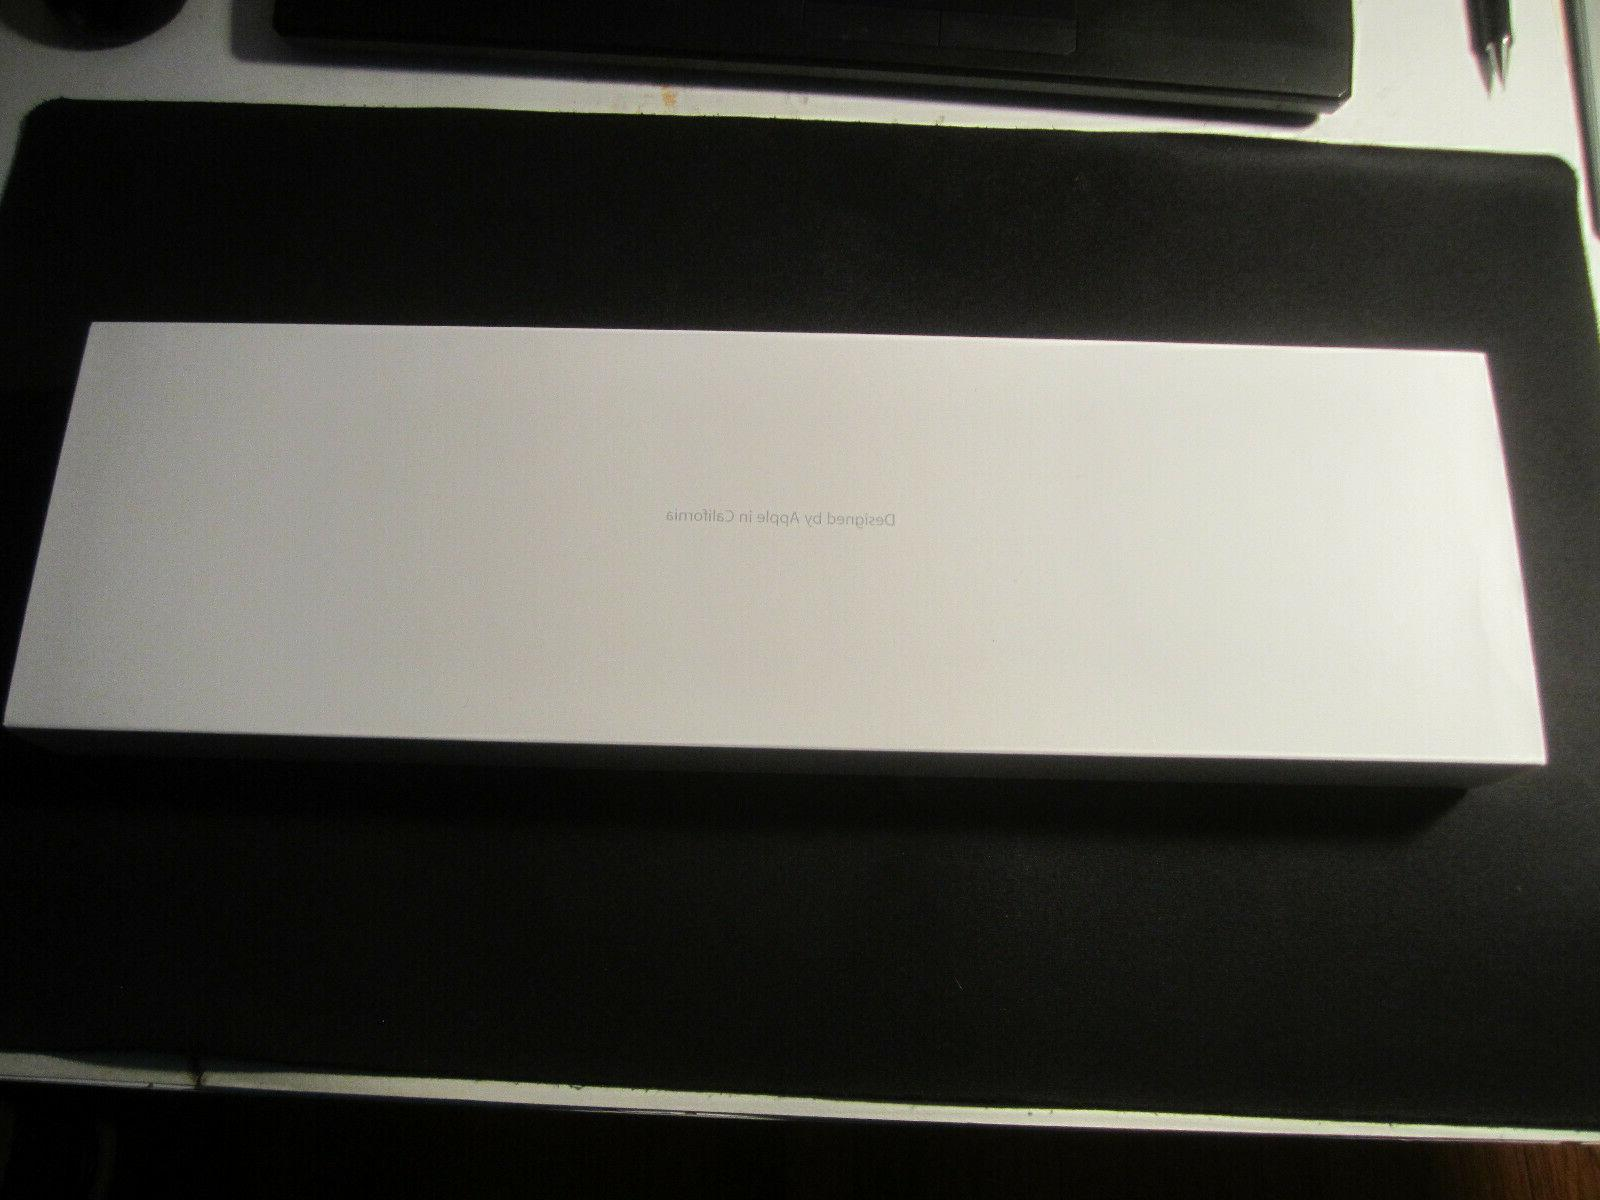 APPLE Wireless Keyboard A1314 and A1296 Set BRAND NEW MINT